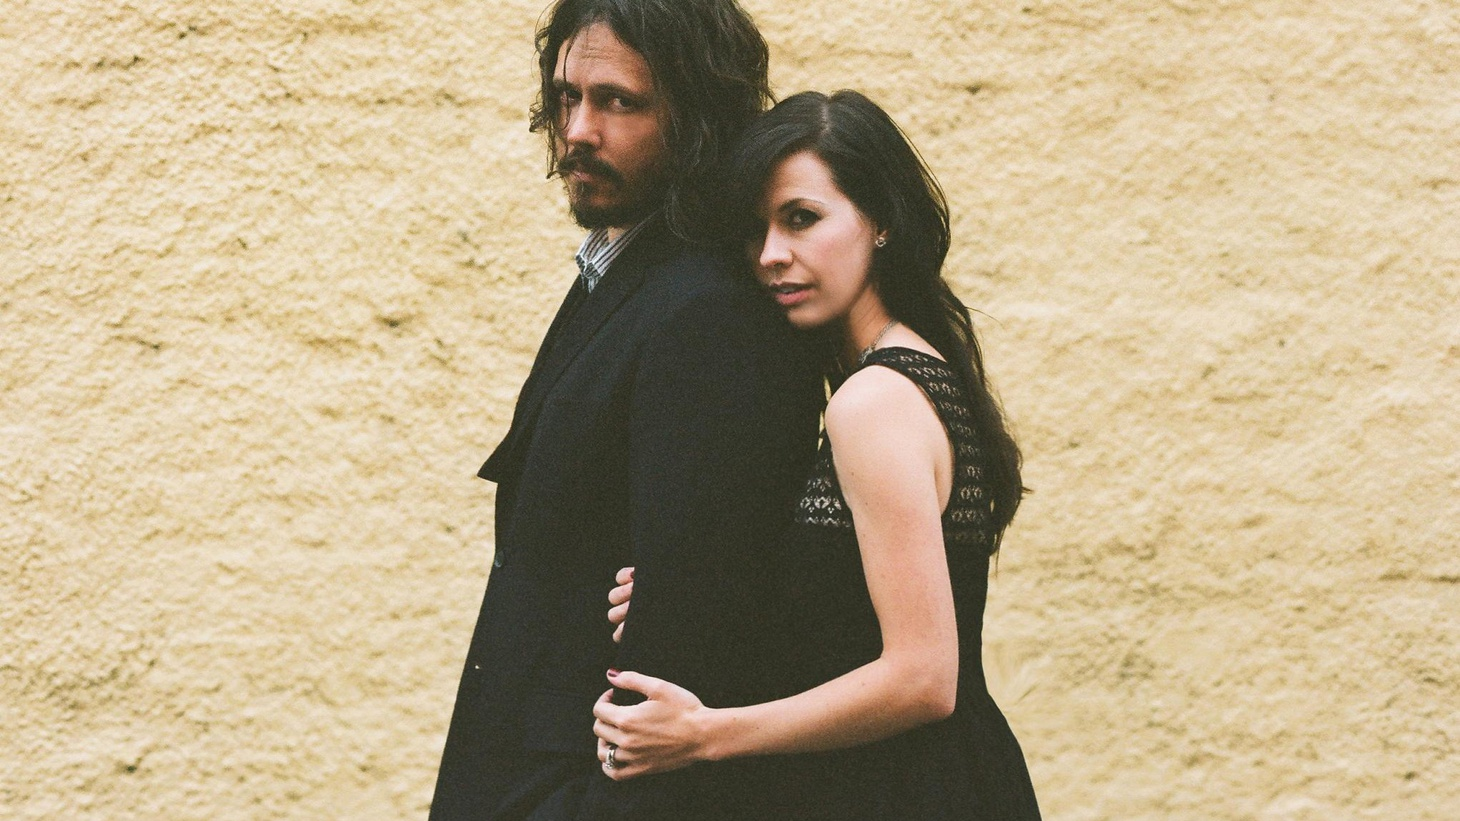 """Indie folk rock duo The Civil Wars met on a professional blind date when they were asked to collaborate as a writing team to pen hits for a well-known country band. That meeting ignited a creative spark and their debut full length is now slated for a February release. Today's Top Tune is the title track from """"Barton Hollow."""""""